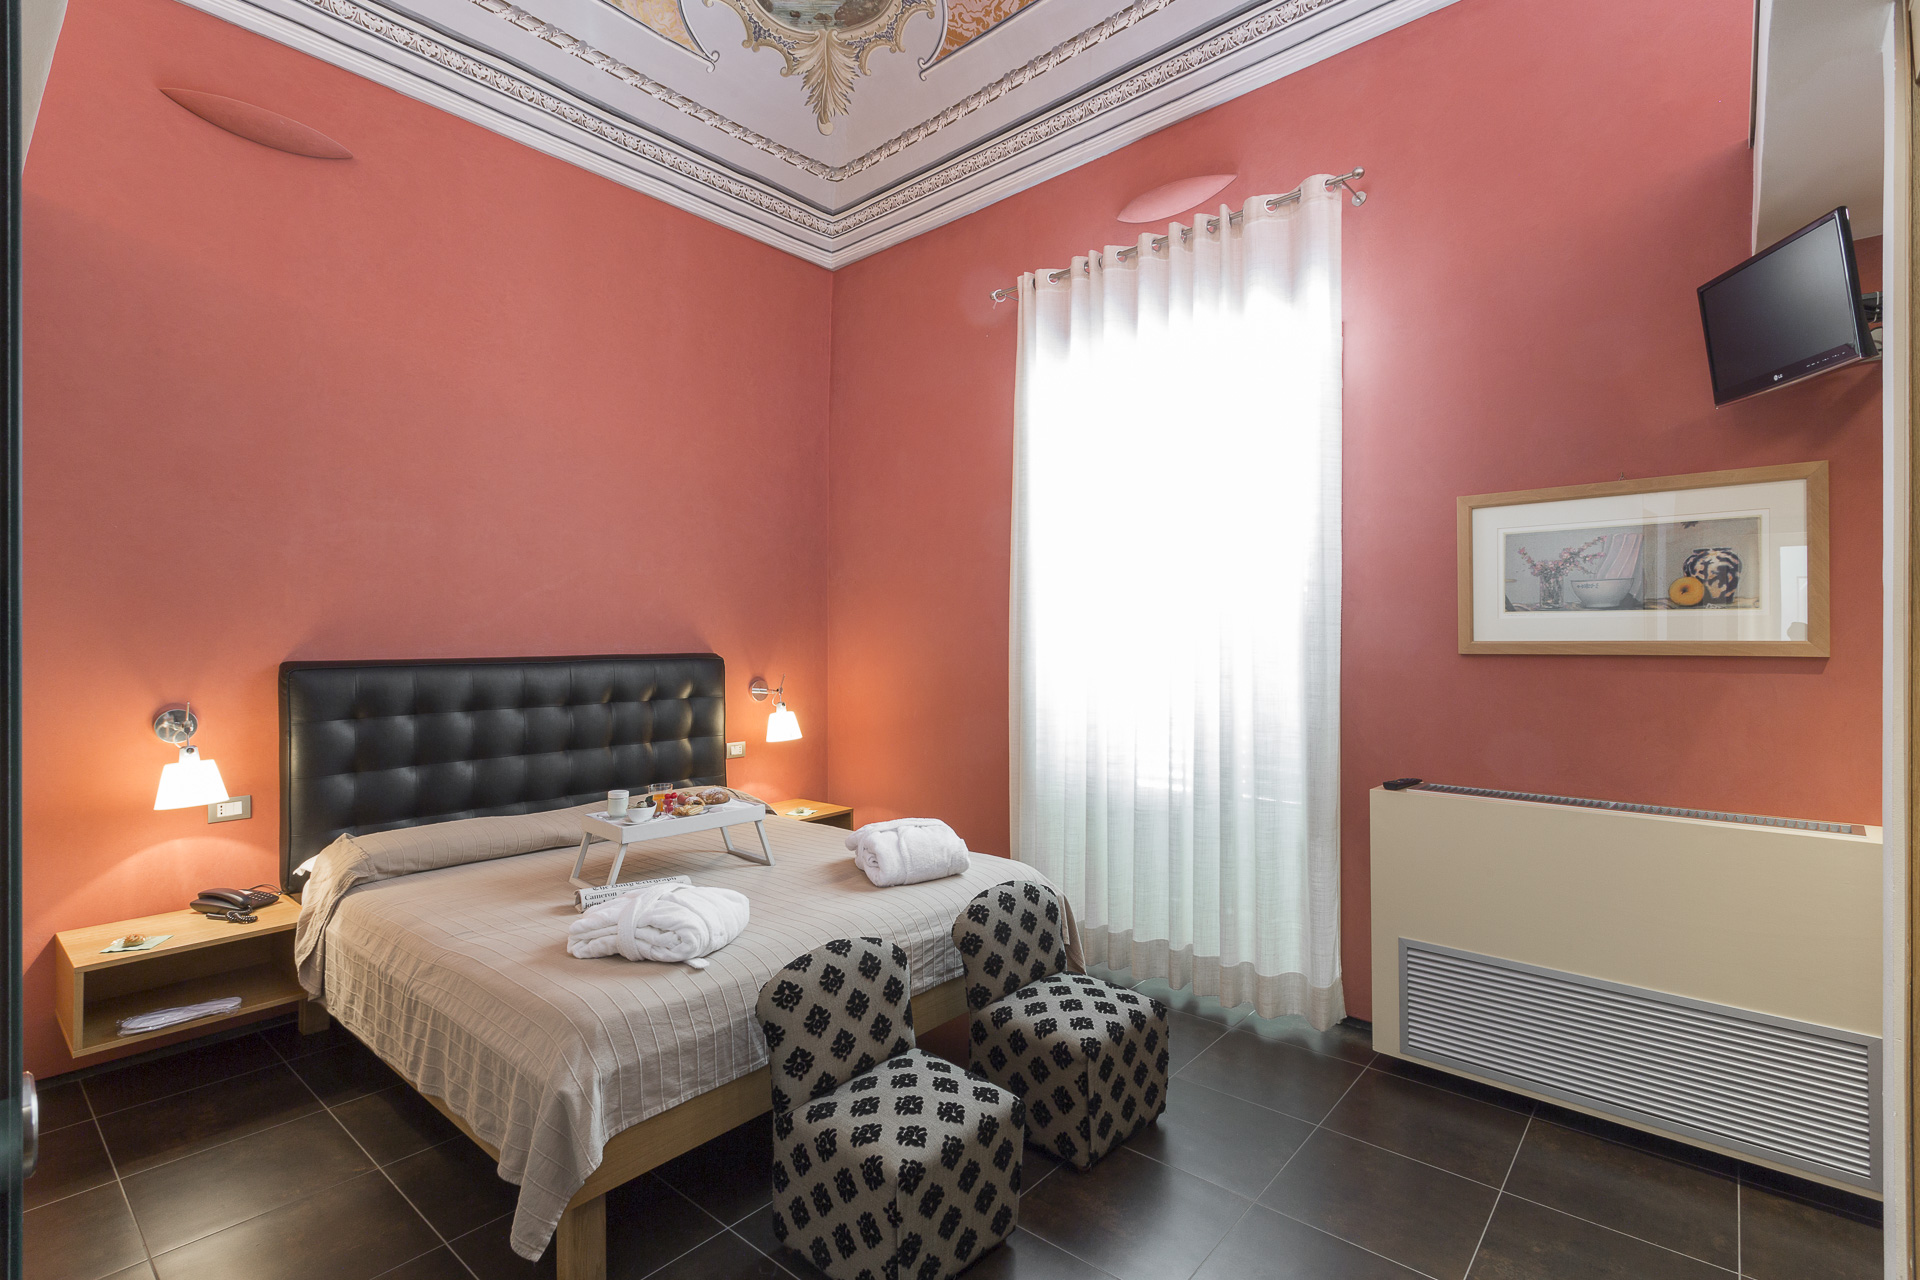 Camera Suite | Hotel900 4stelle superior | Scicli